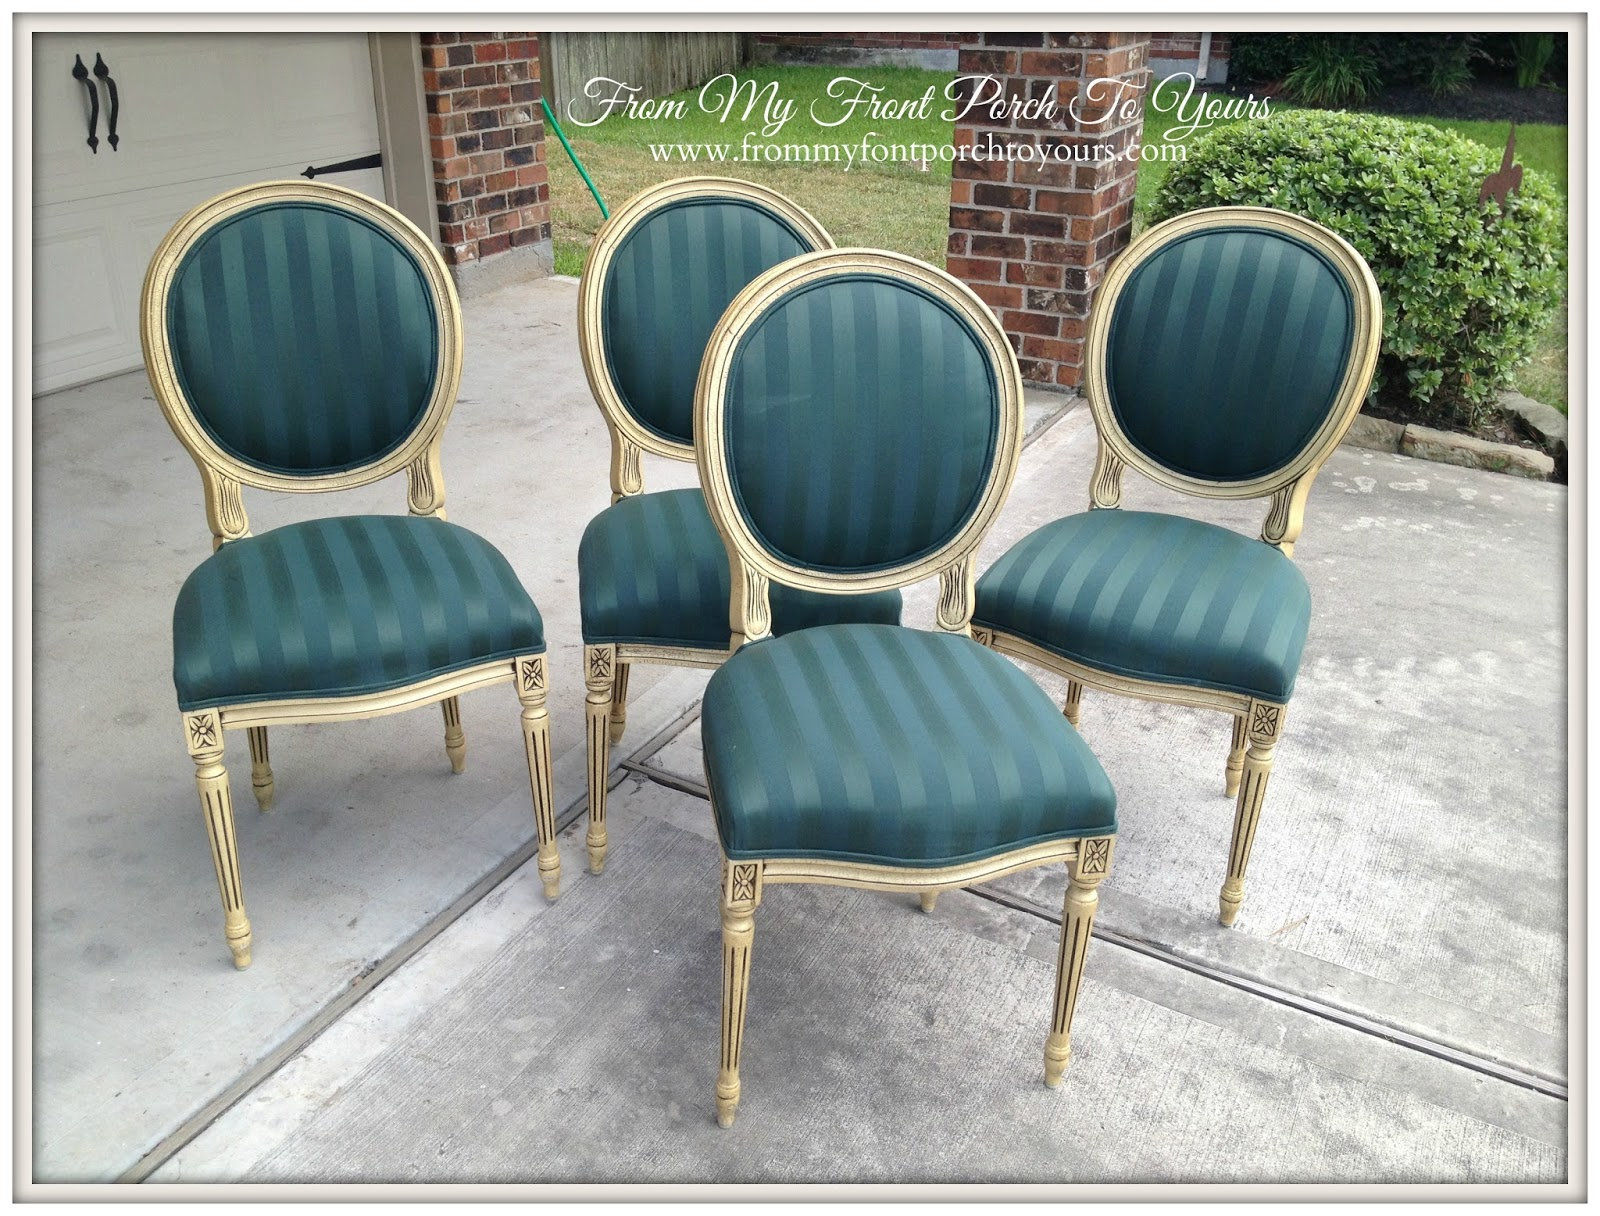 Painted fabric chairs - From My Front Porch To Yours Painting Fabric With Chalk Paint